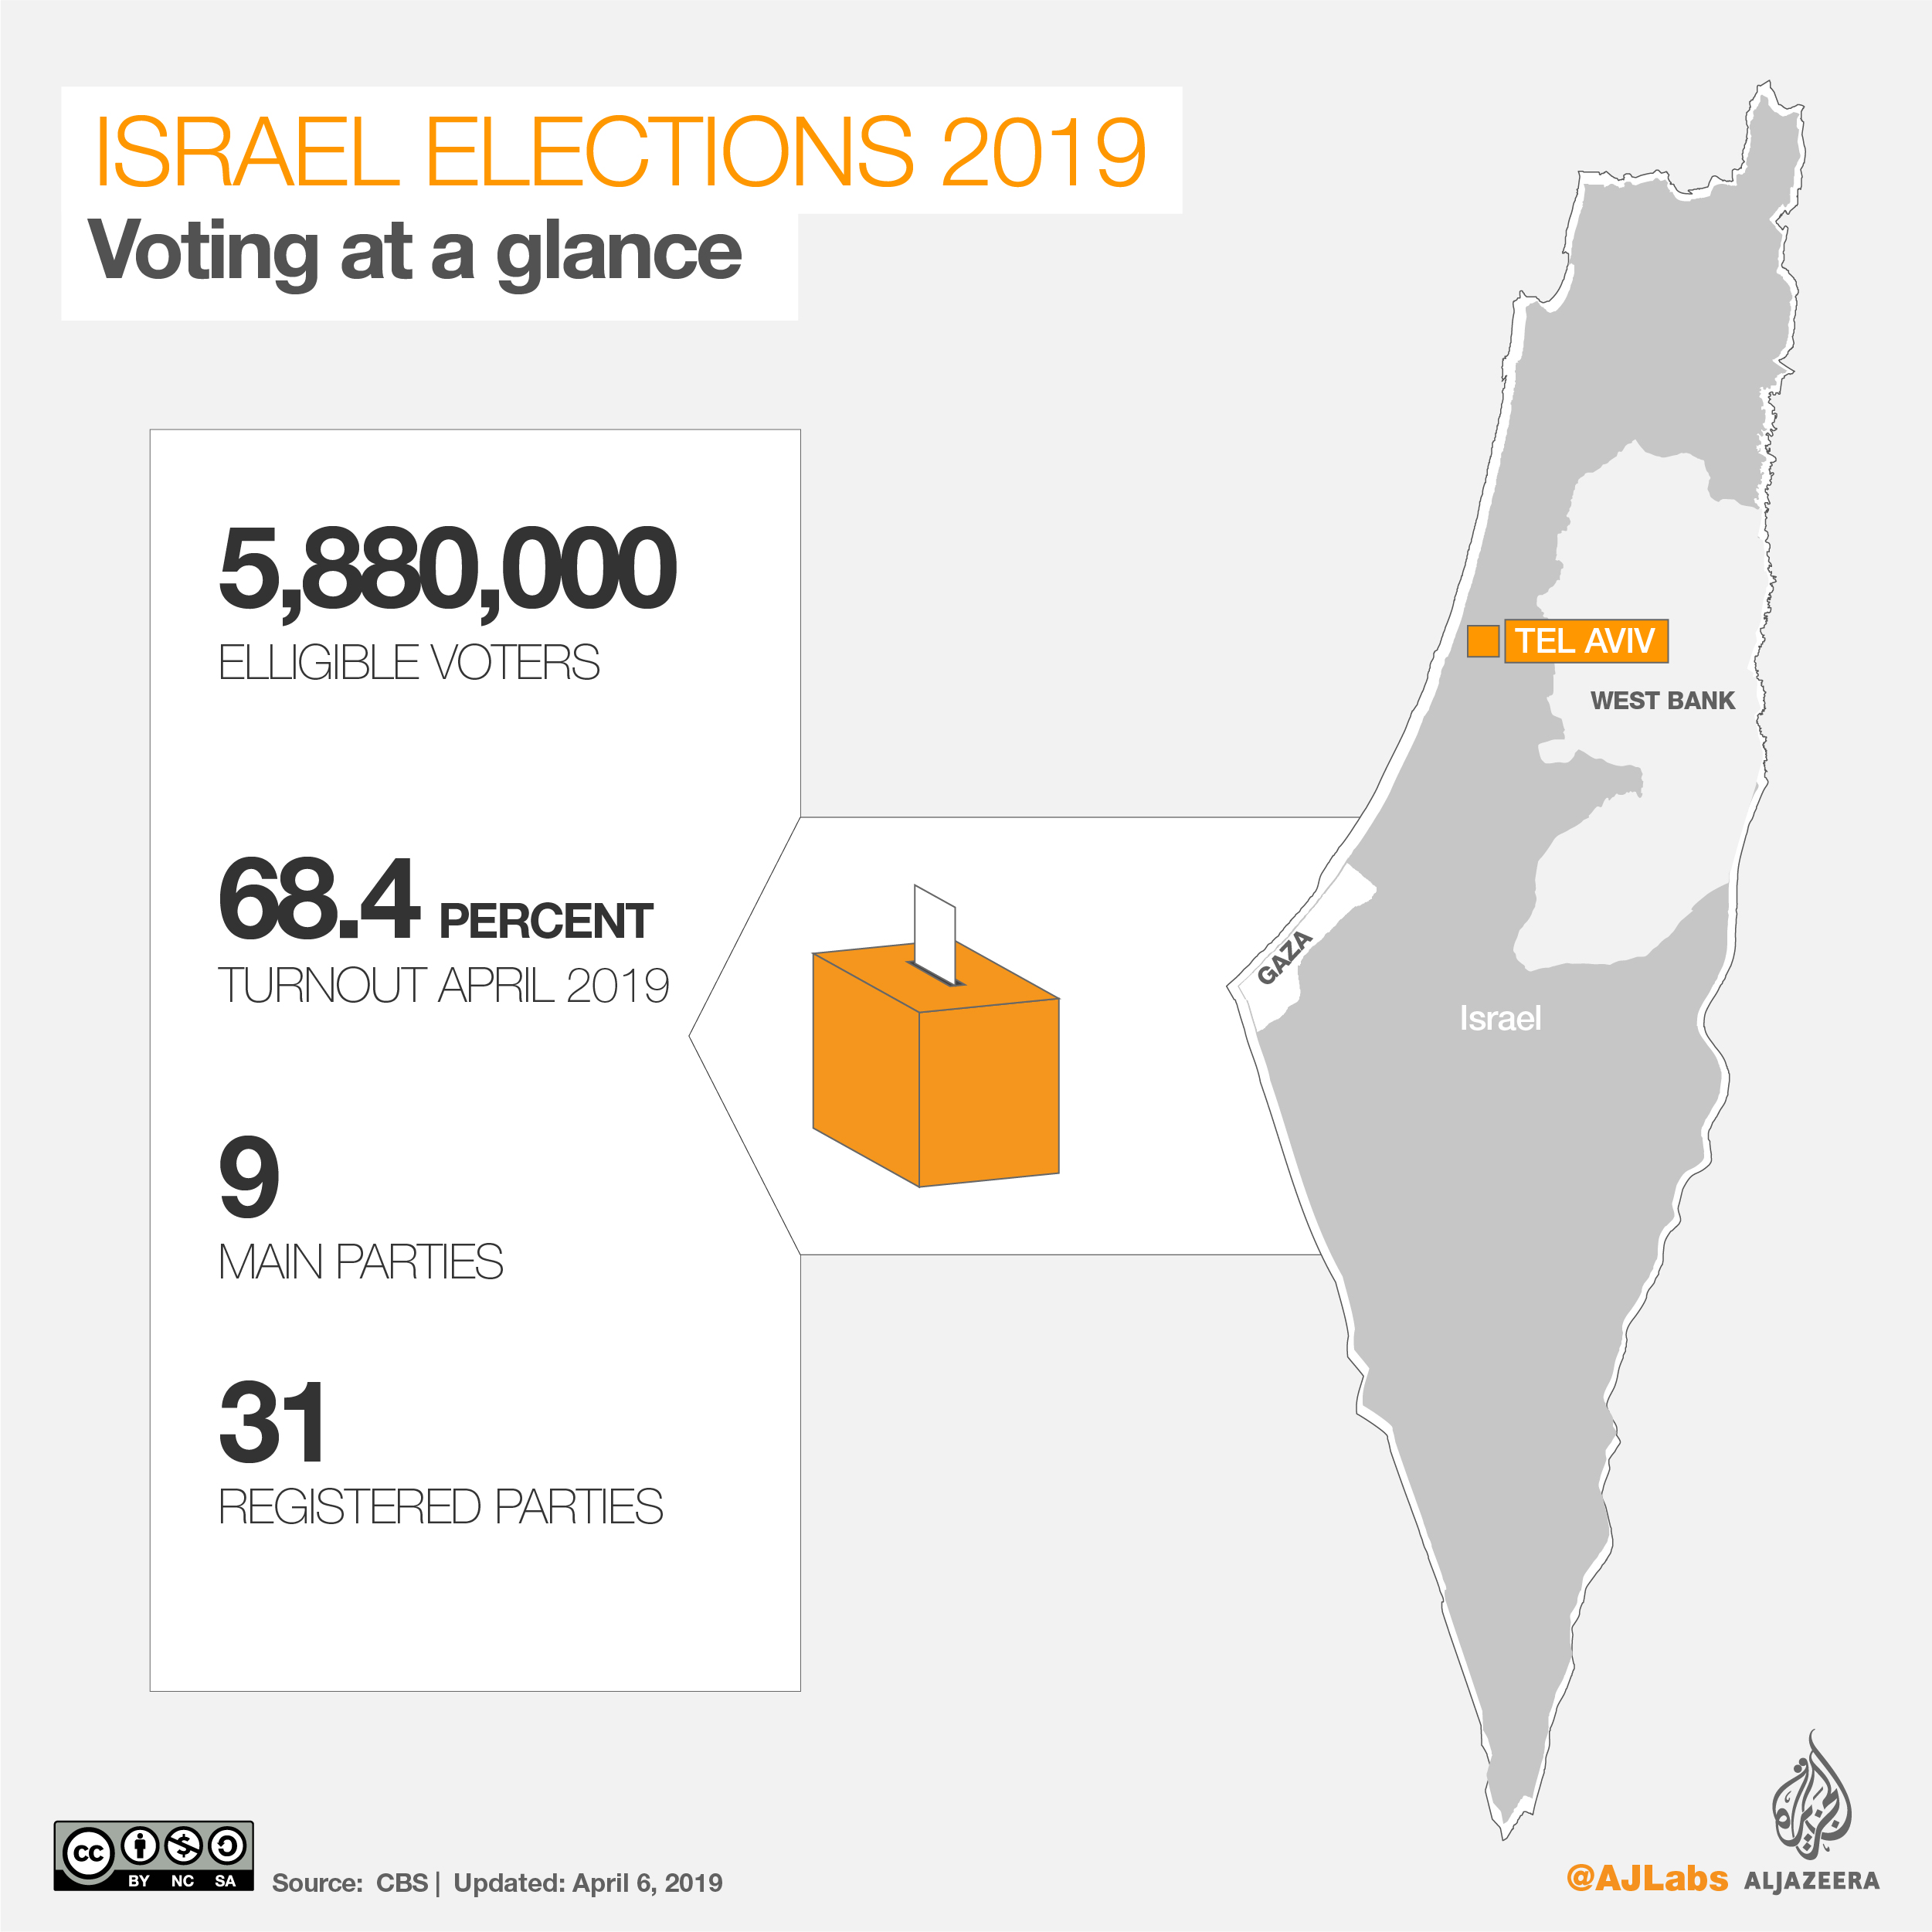 interactive israel election voting at a glance